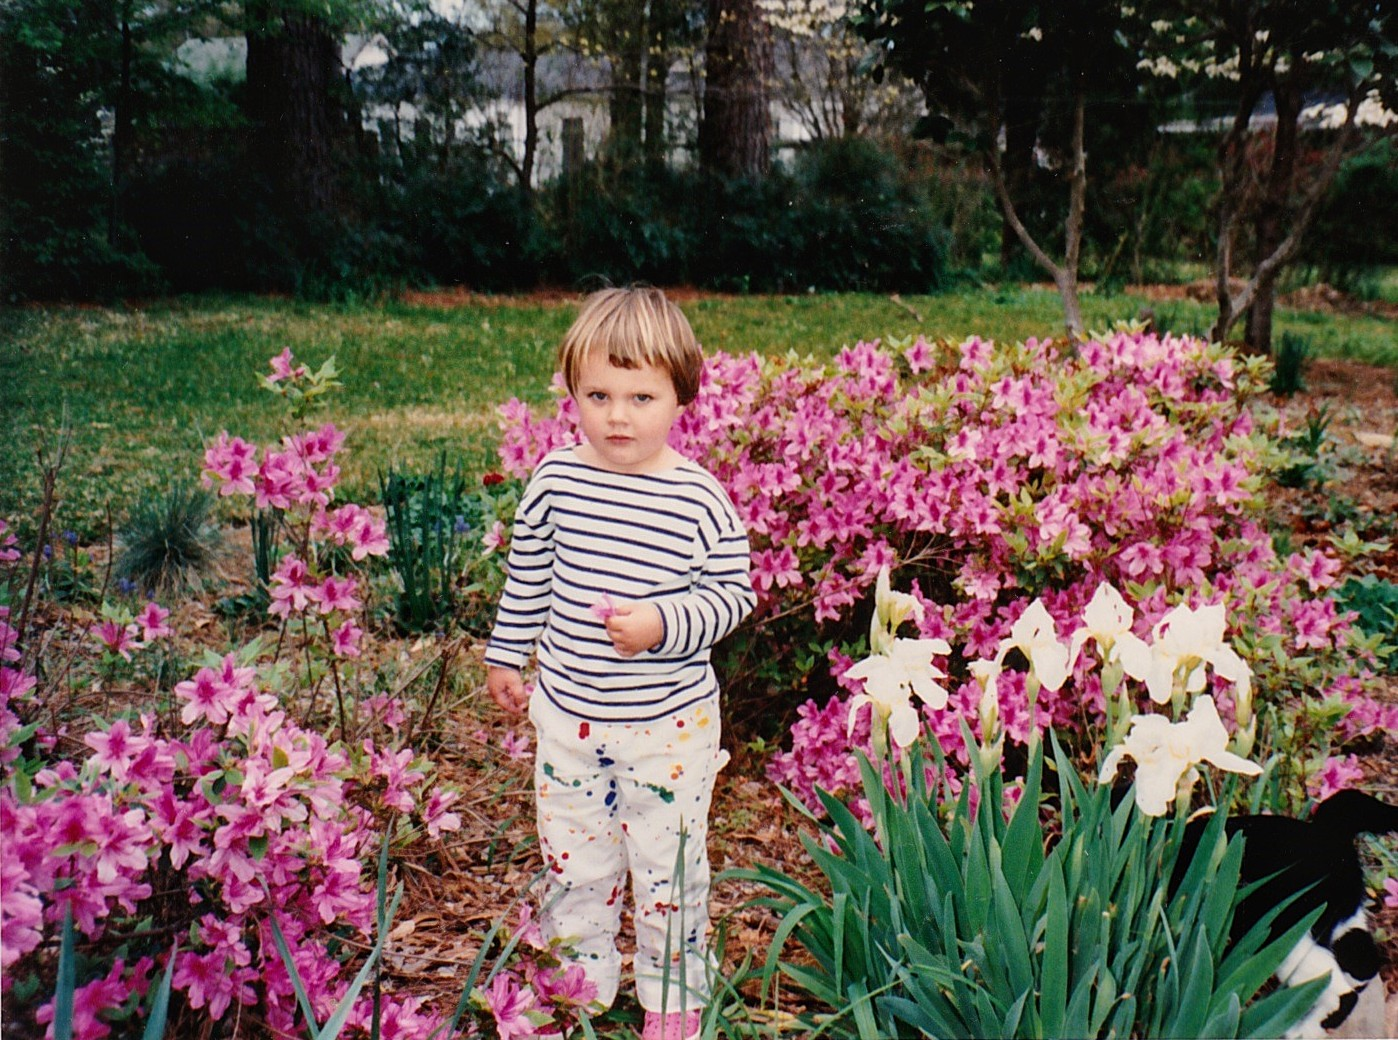 A young girl in a striped shirt standing among vivid pink azalea blooms with a cat just barely visible at her feet.